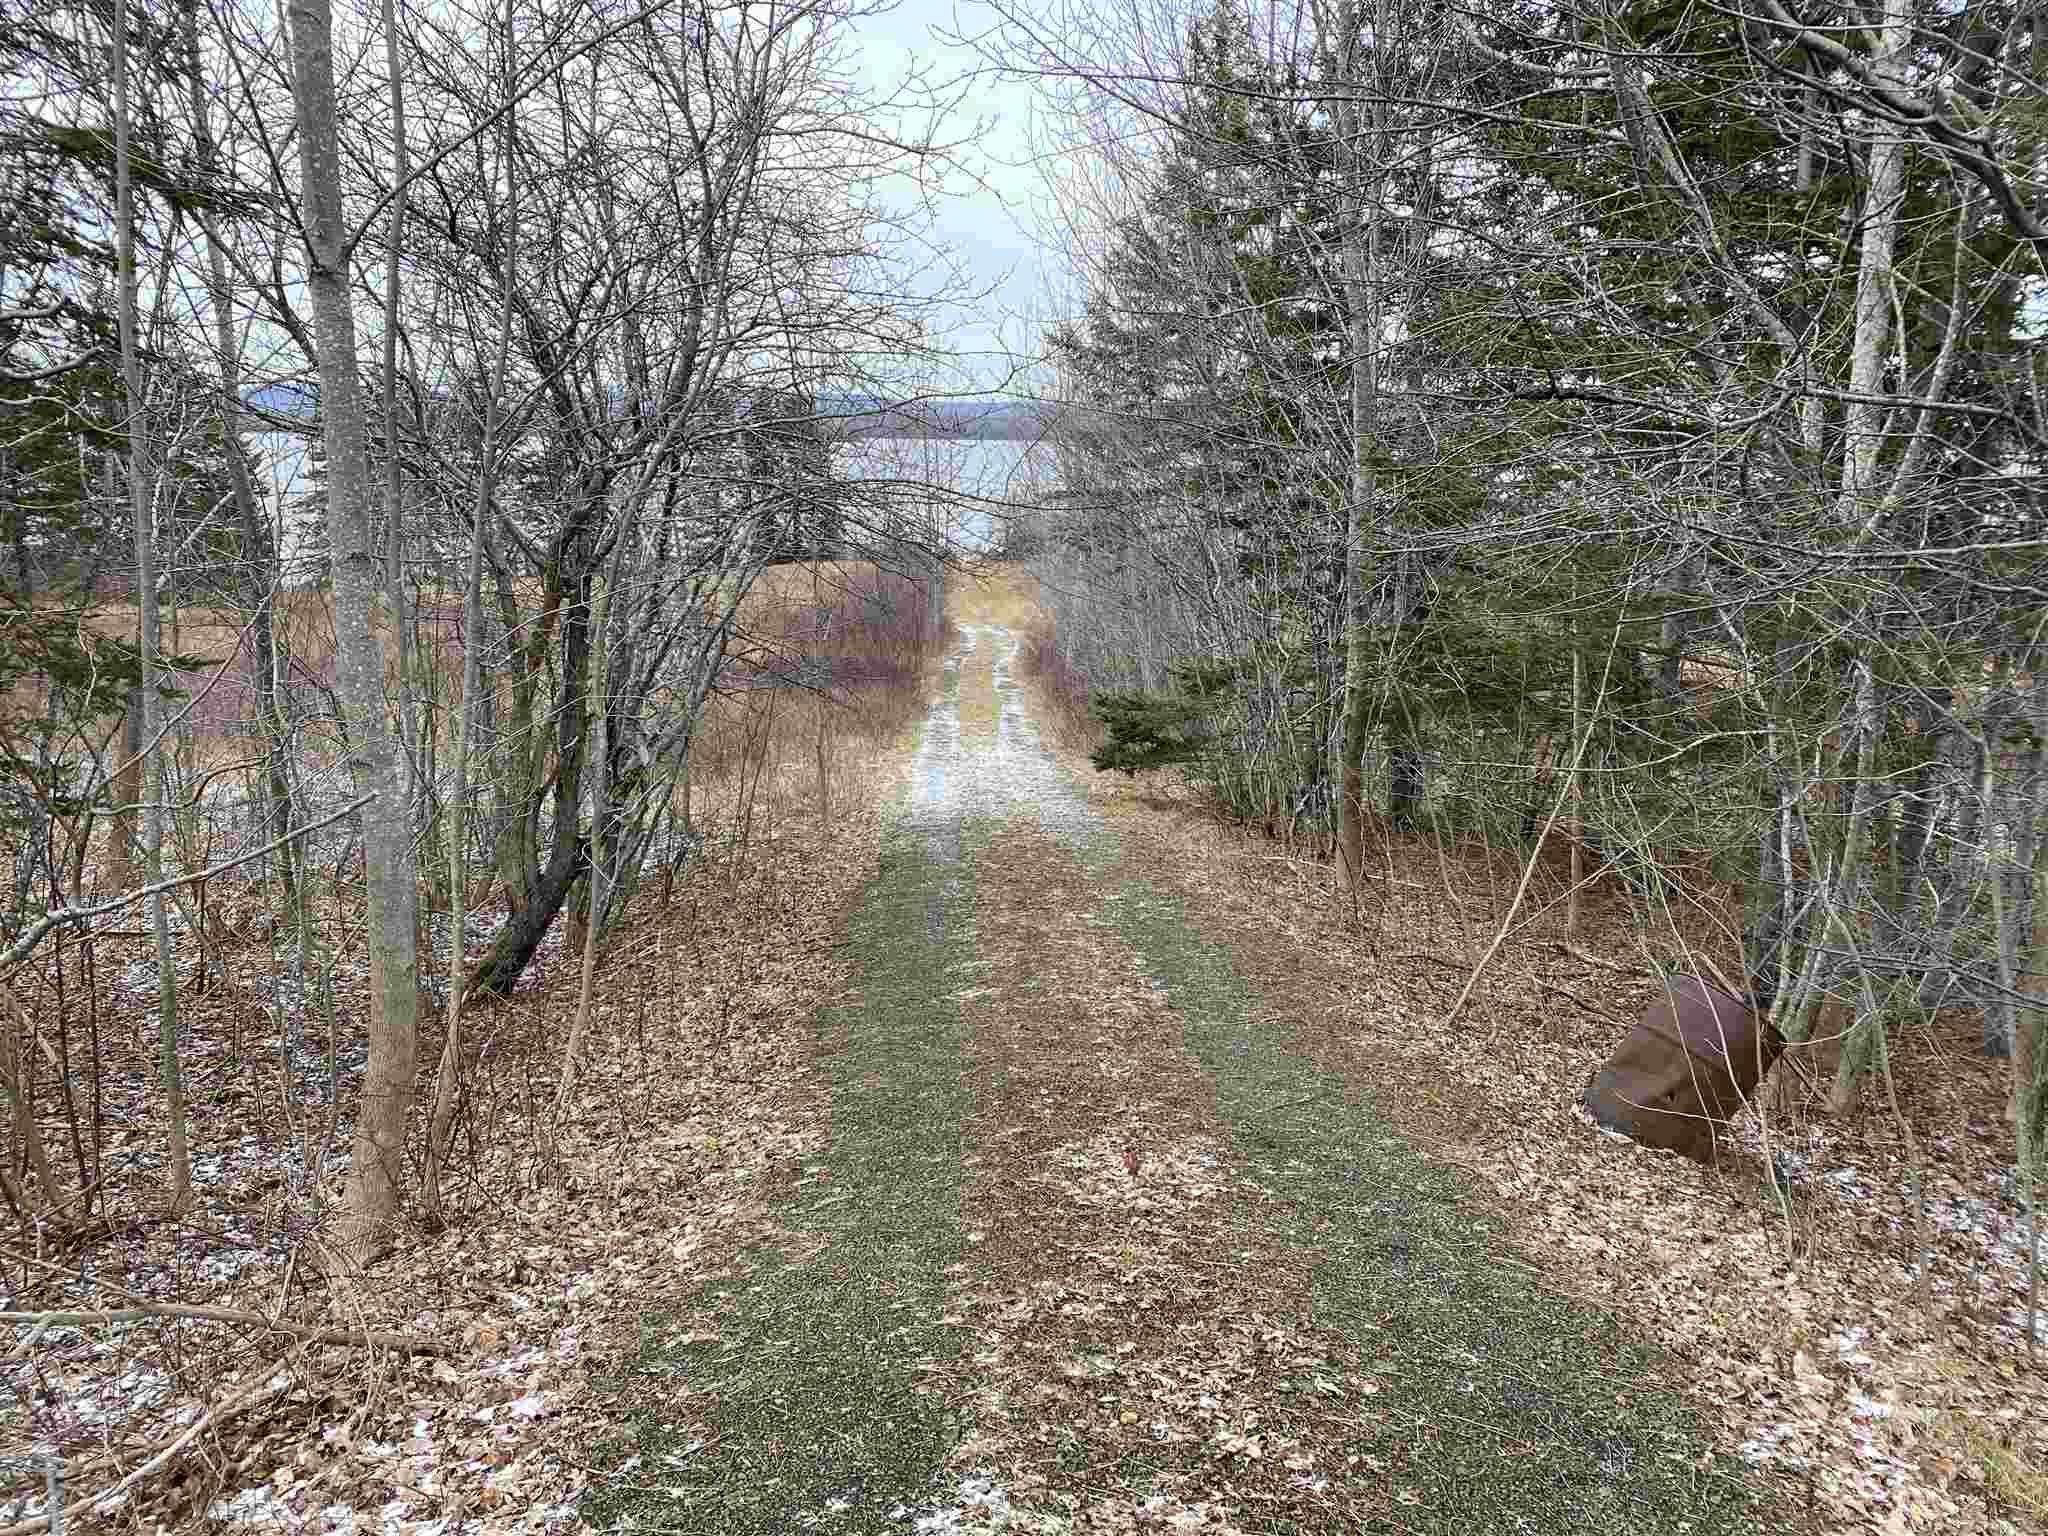 Photo 7: Photos: 8080 Marble Mountain Road in Malagawatch: 306-Inverness County / Inverness & Area Vacant Land for sale (Highland Region)  : MLS®# 202101037